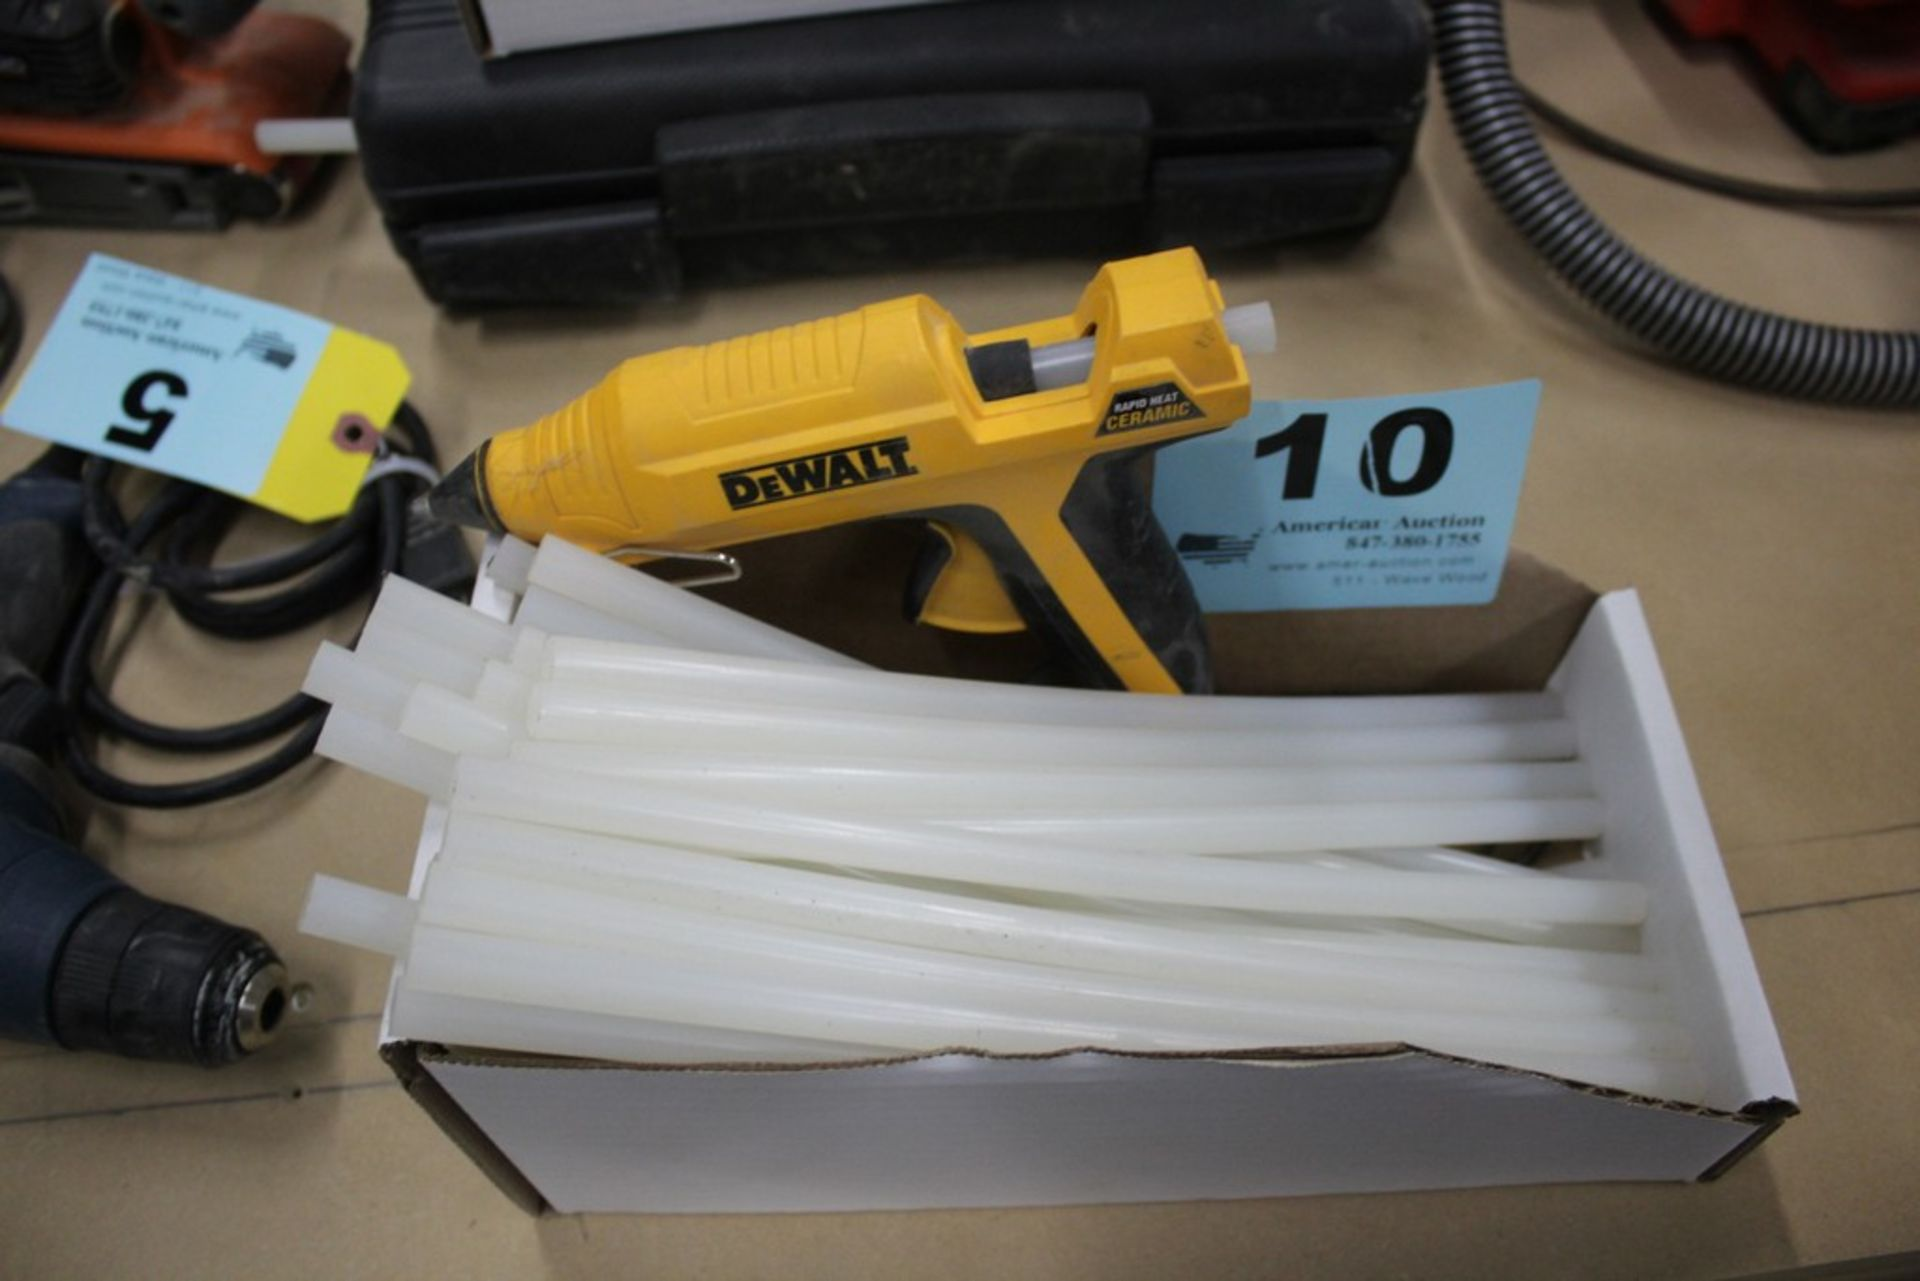 Lot 10 - DEWALT MODEL DWHT GR50 RAPID HEAT CERAMIC GLUE GUN WITH GLUE STICKS